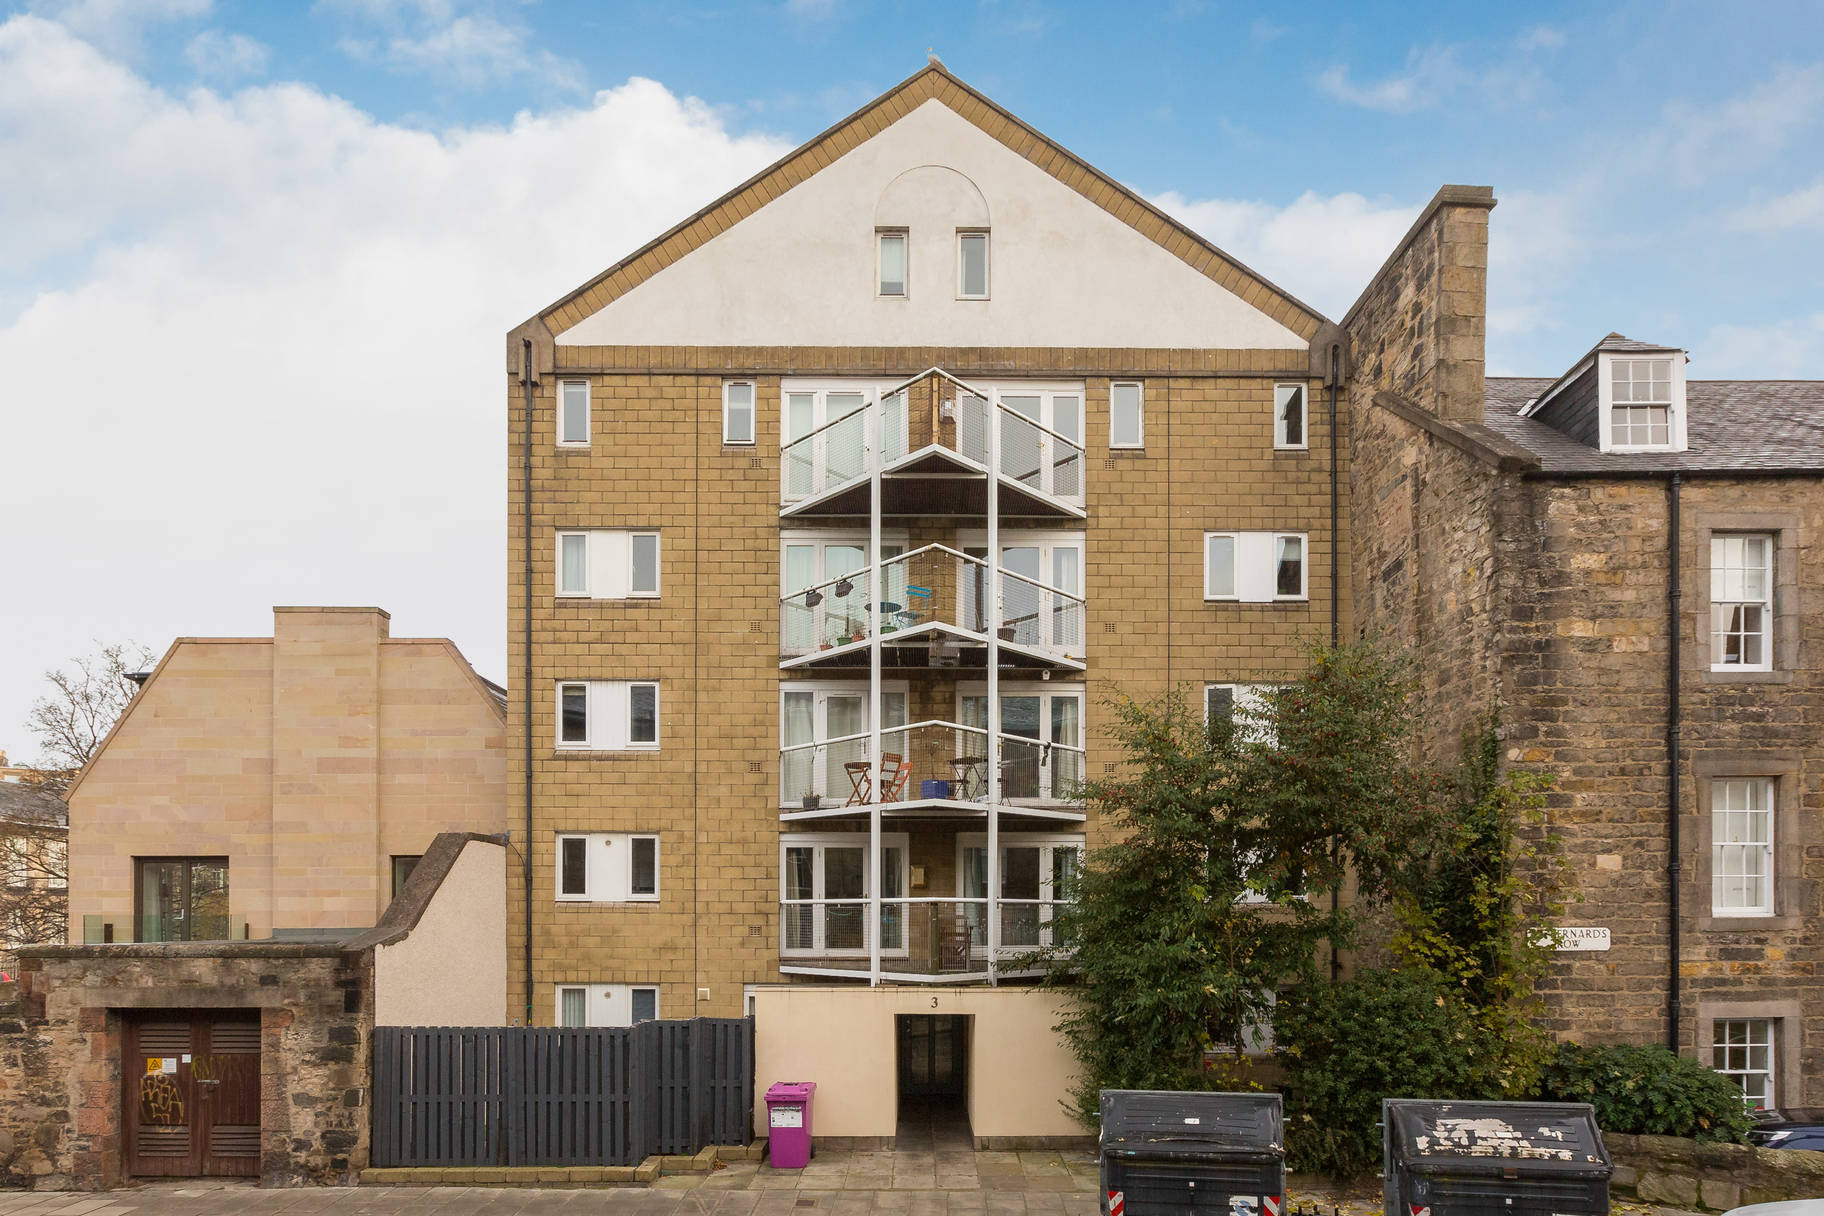 3/7 St Bernard's Row, Edinburgh, EH4 1HW